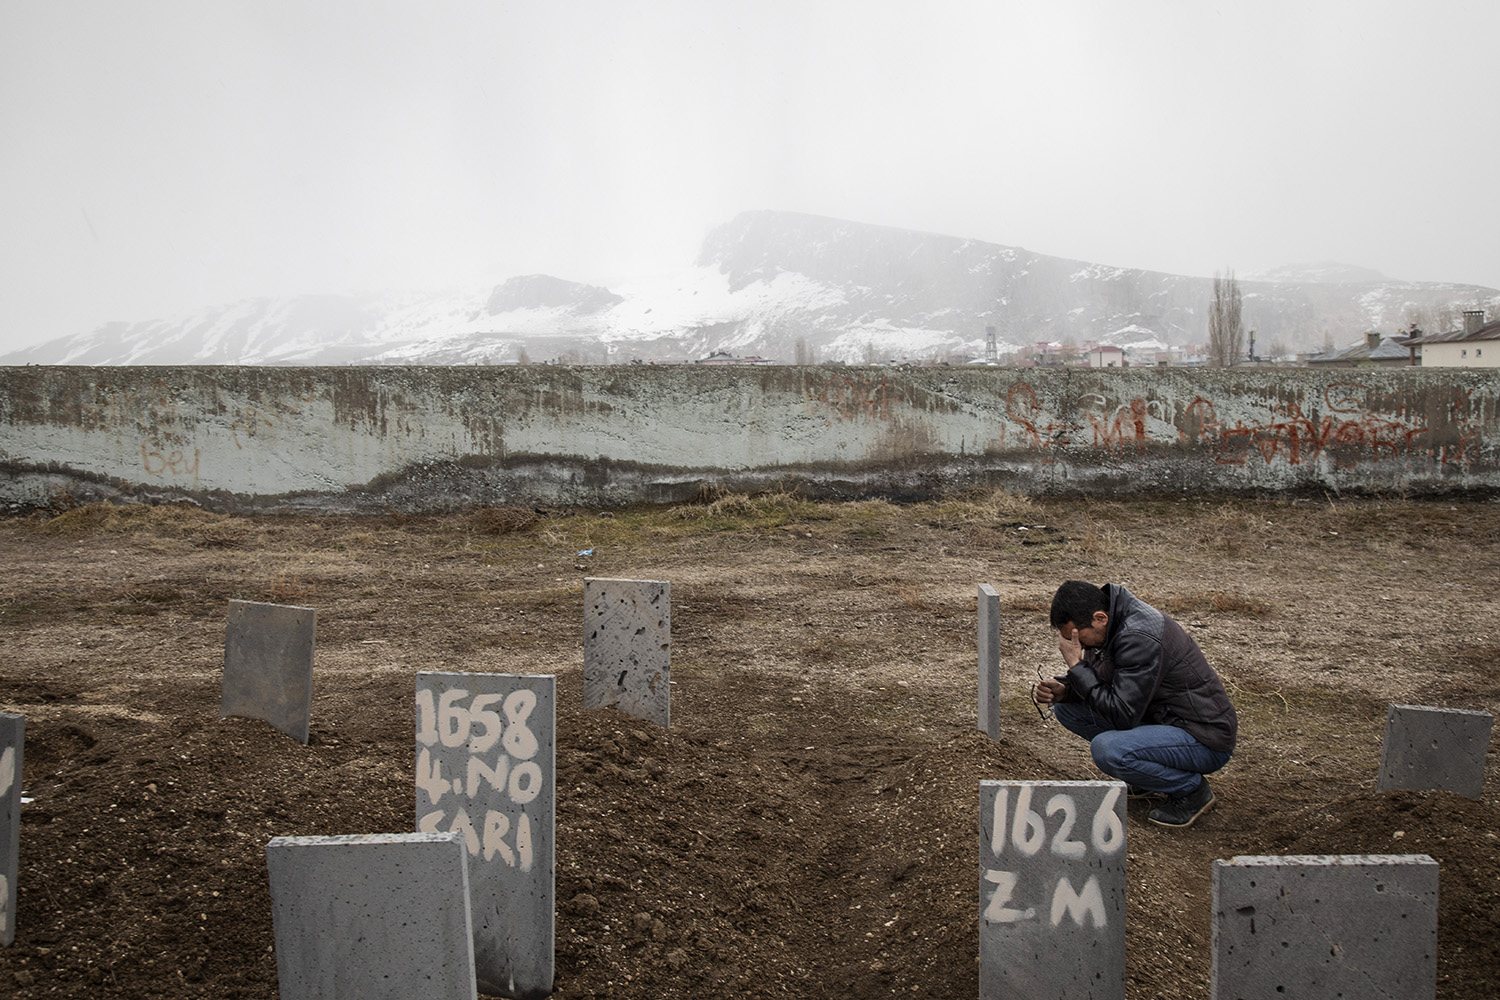 Hamdi, a refugee from Afghanistan who didn't want to use his full name, visits the grave of his 4-year-old daughter, Zehra, in a cemetery for unidentified victims and those who cannot afford a grave plot in Van, Turkey, on March 3, 2019. Zehra died in a traffic accident while her family attempted to travel across Turkey to Europe.